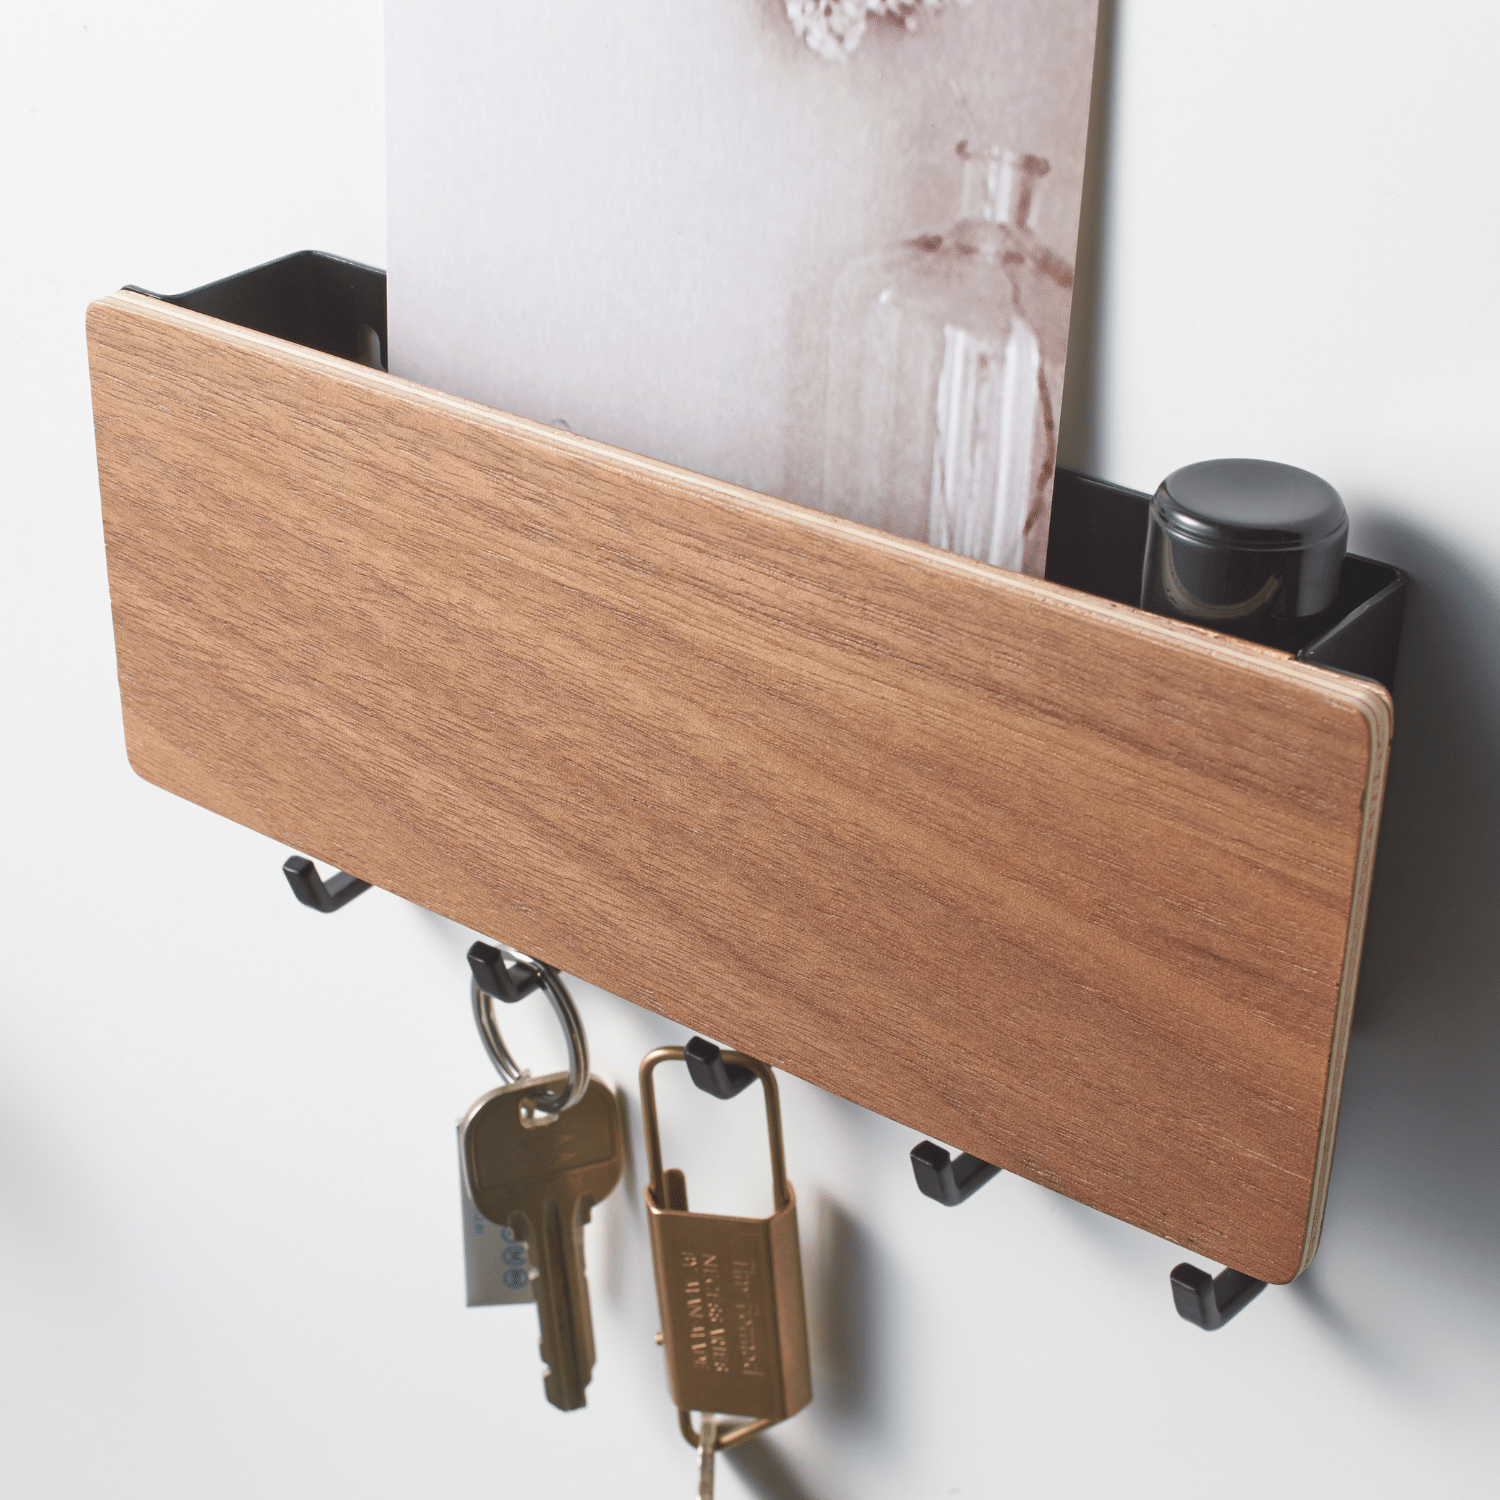 Magnetic Key Hook with Tray-3